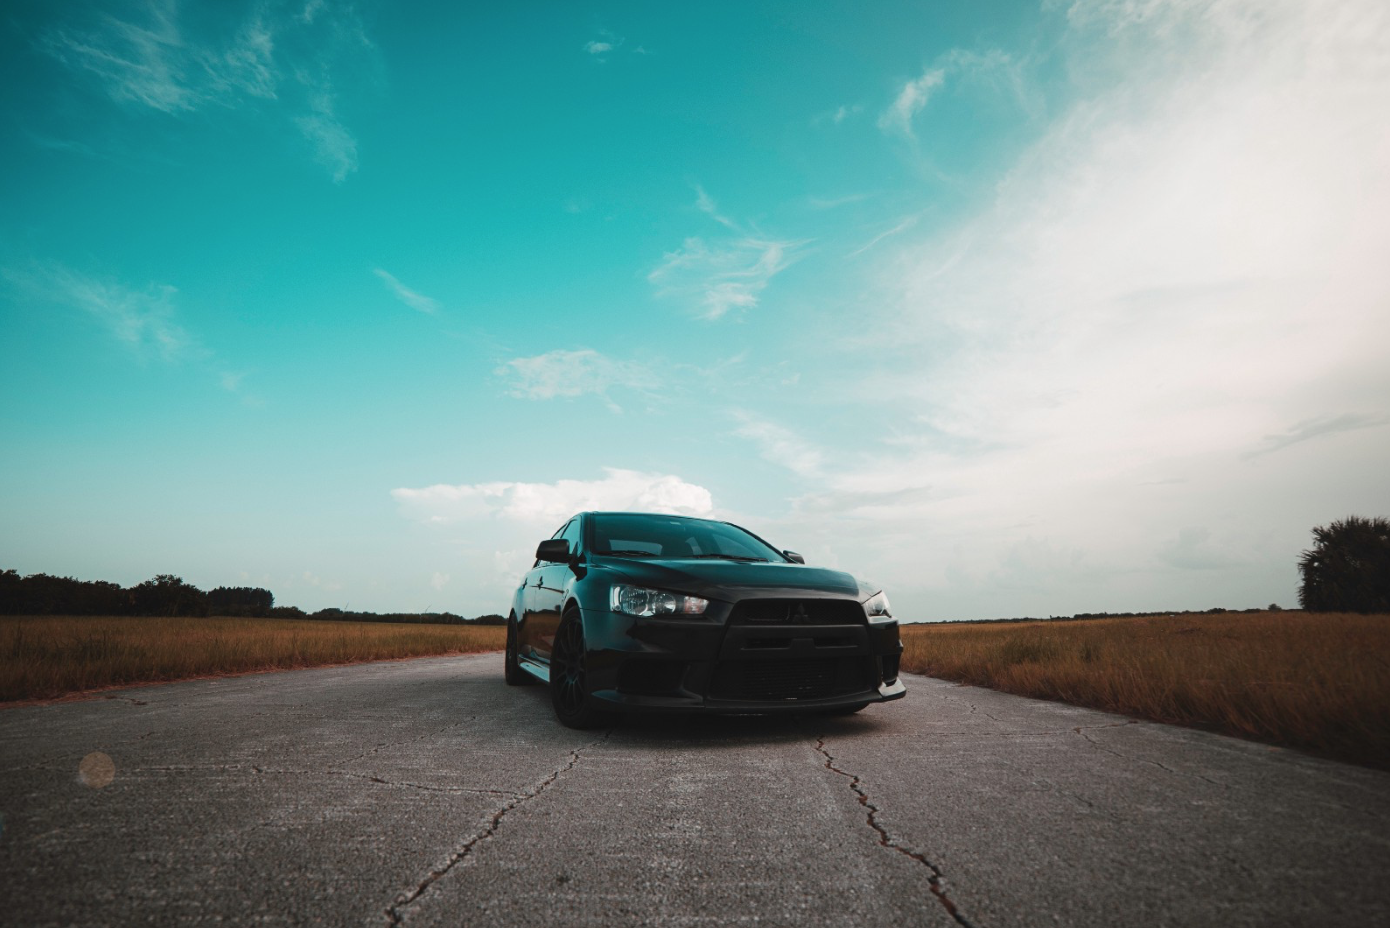 """Self Driving Car"" — Photo by  Aral Tasher  on  Unsplash"